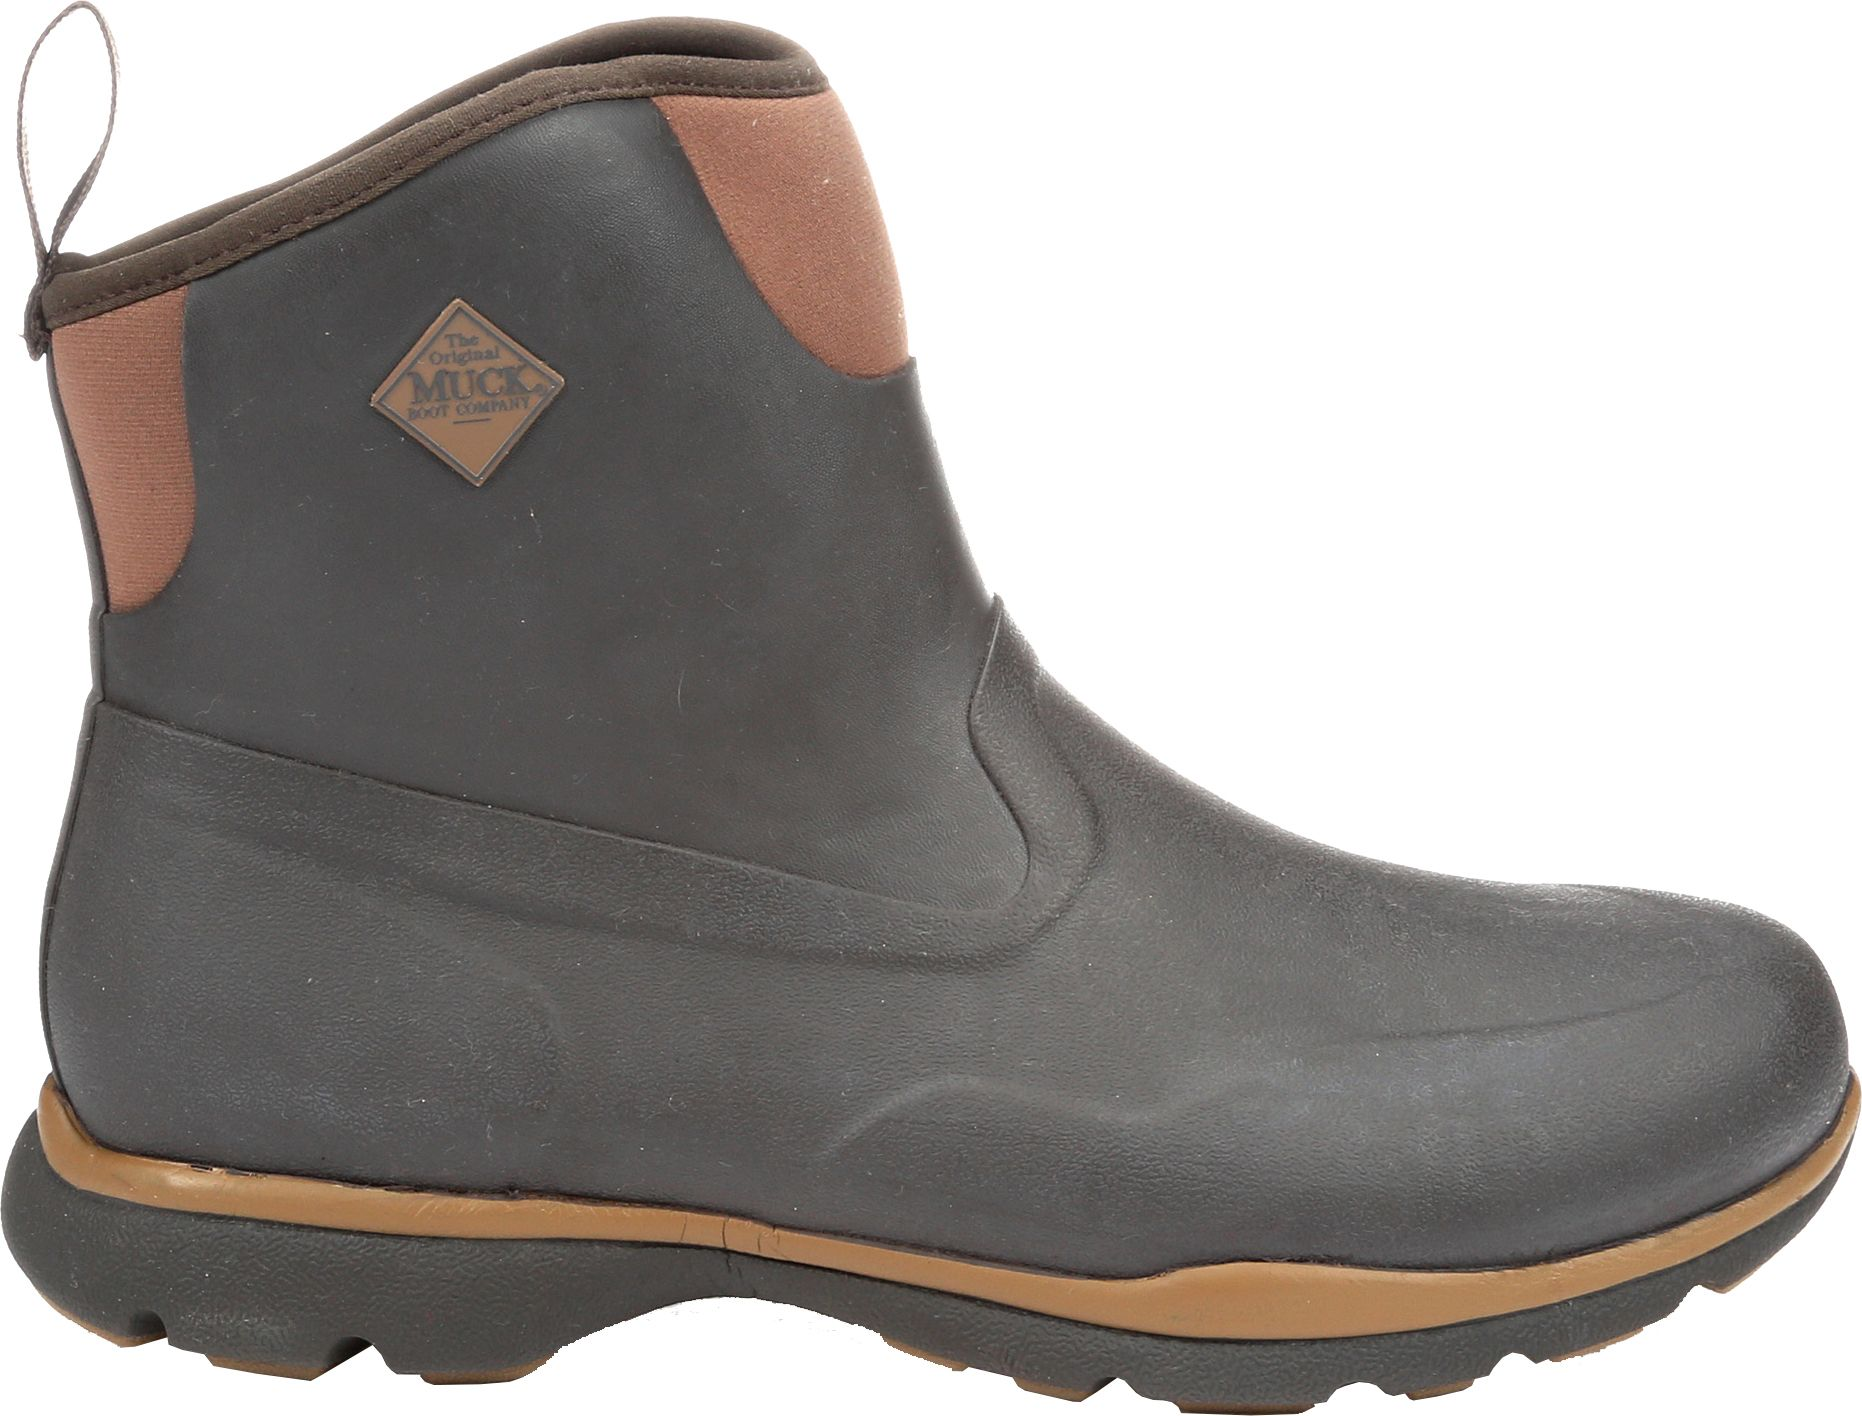 Black Muck Boots | DICK'S Sporting Goods